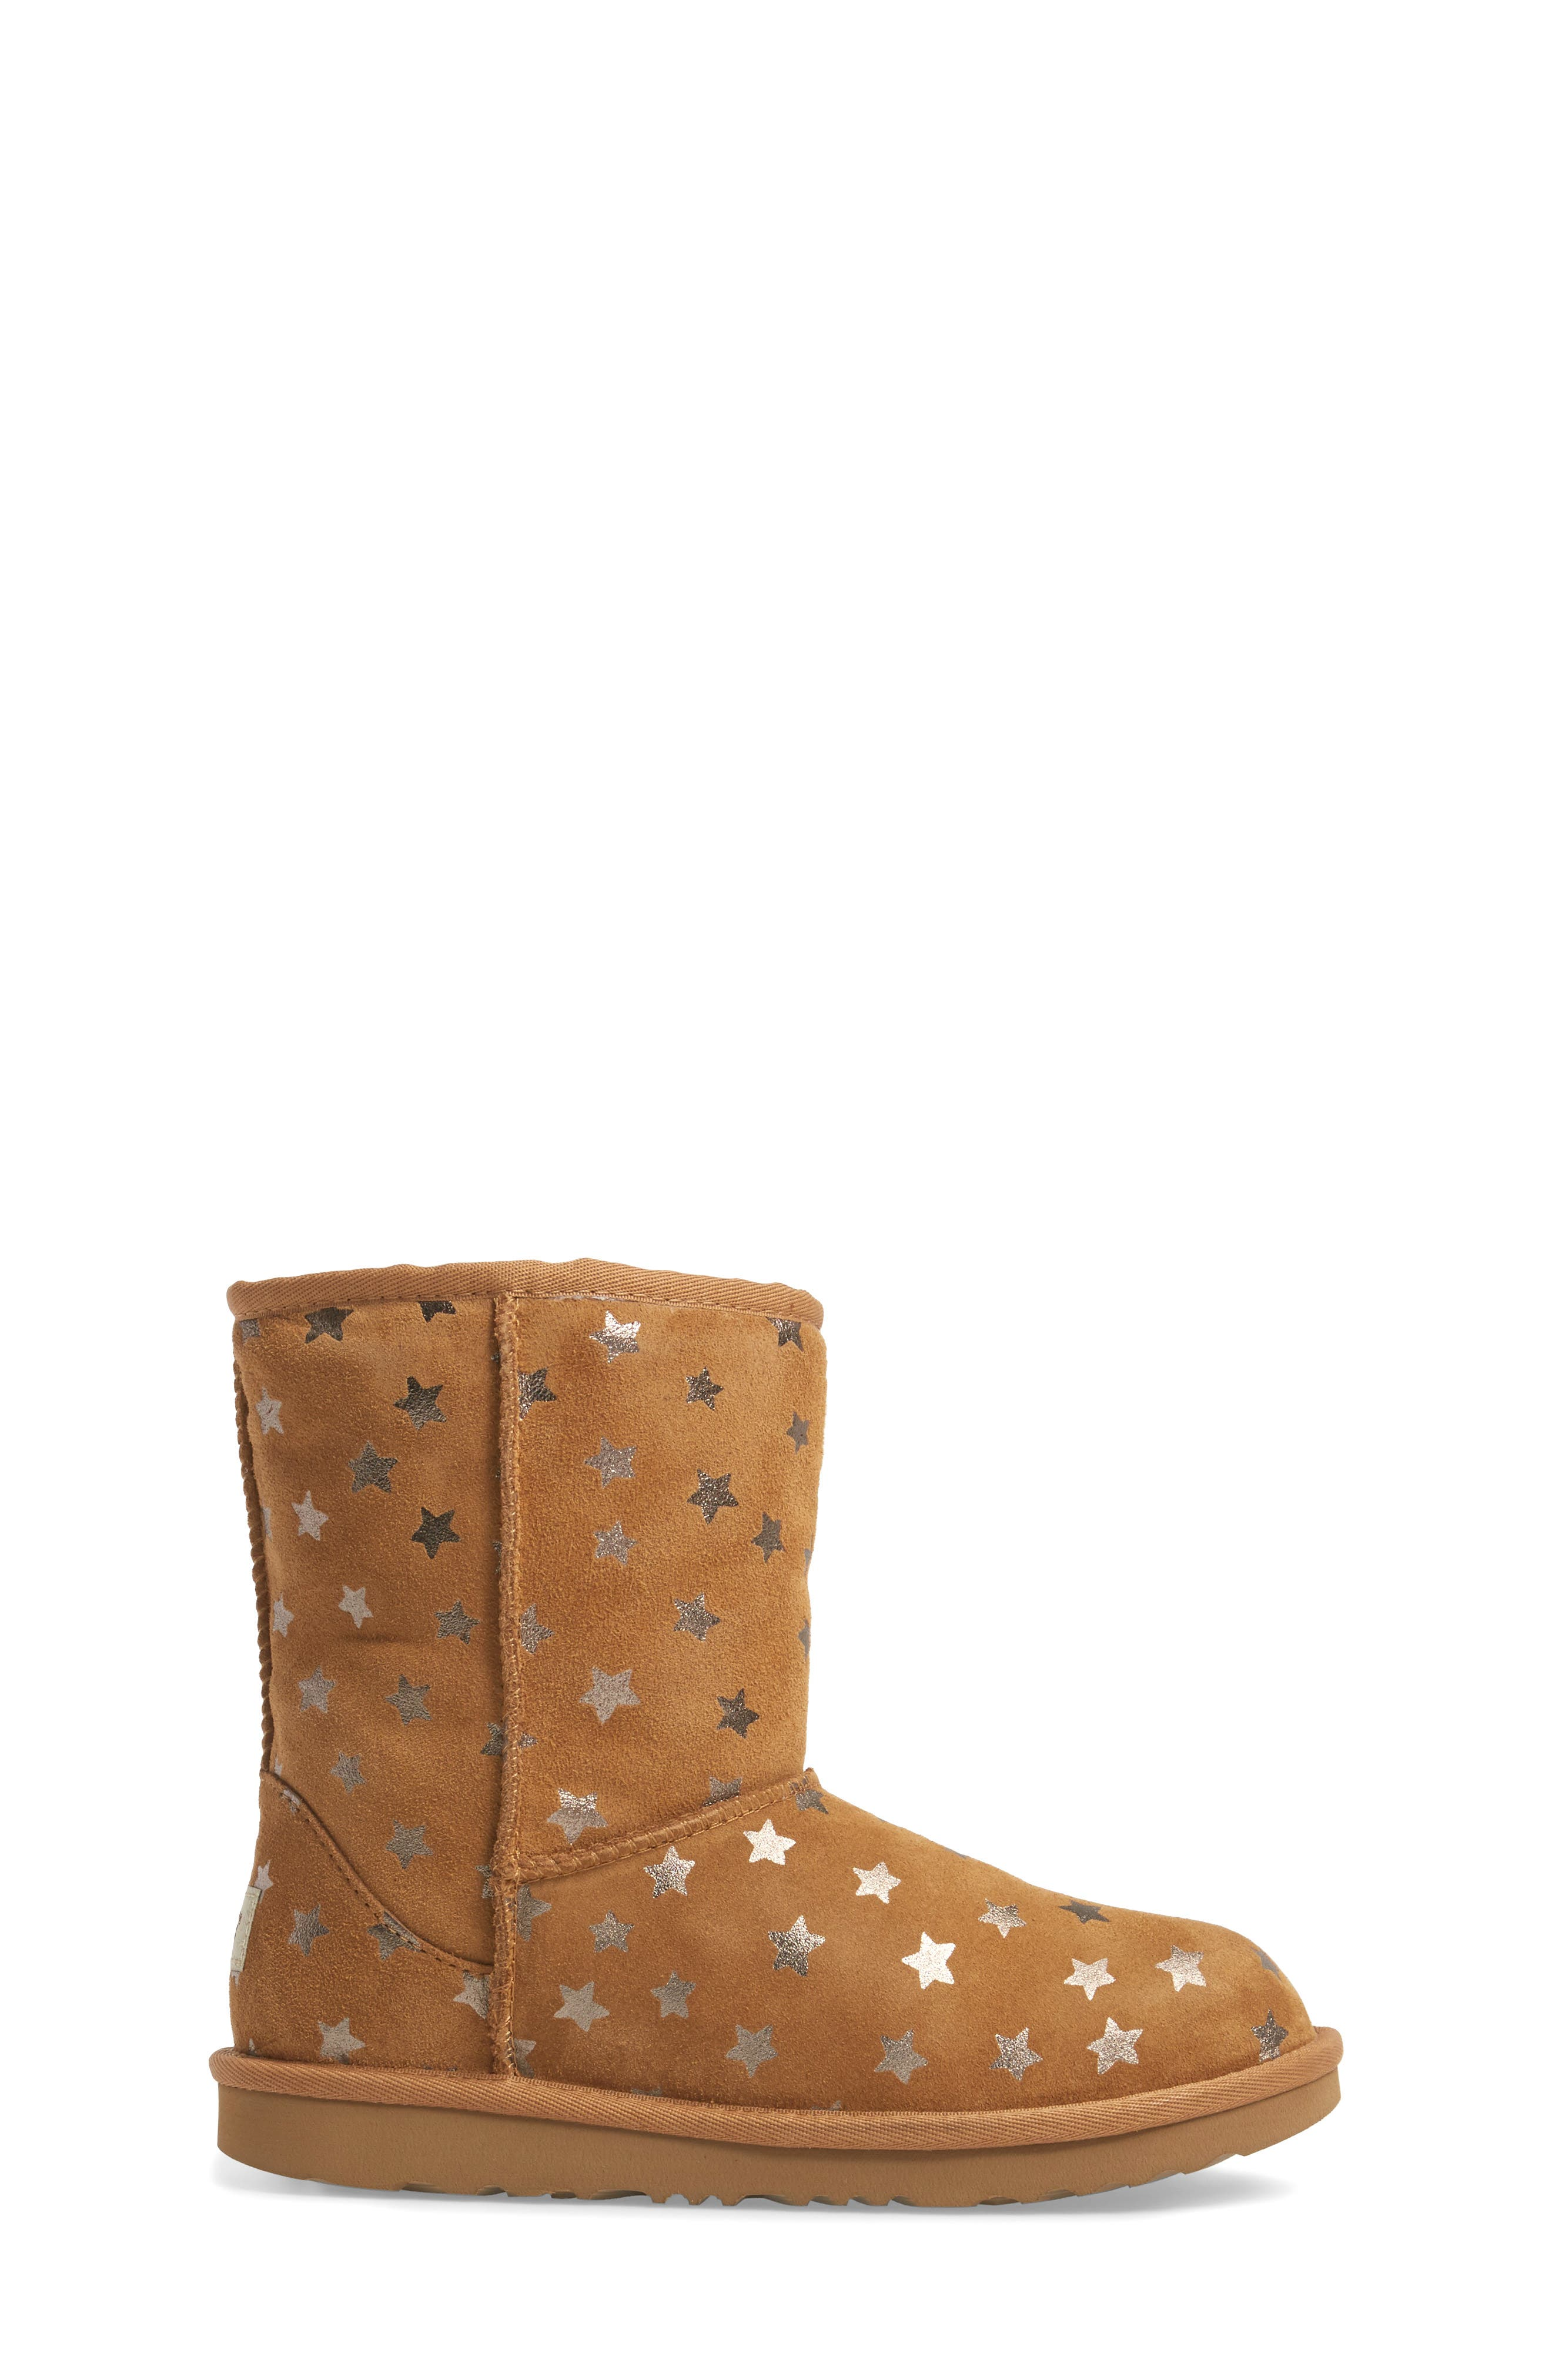 UGG<SUP>®</SUP>, Classic Short II Water Resistant Stars Boot, Alternate thumbnail 3, color, CHESTNUT